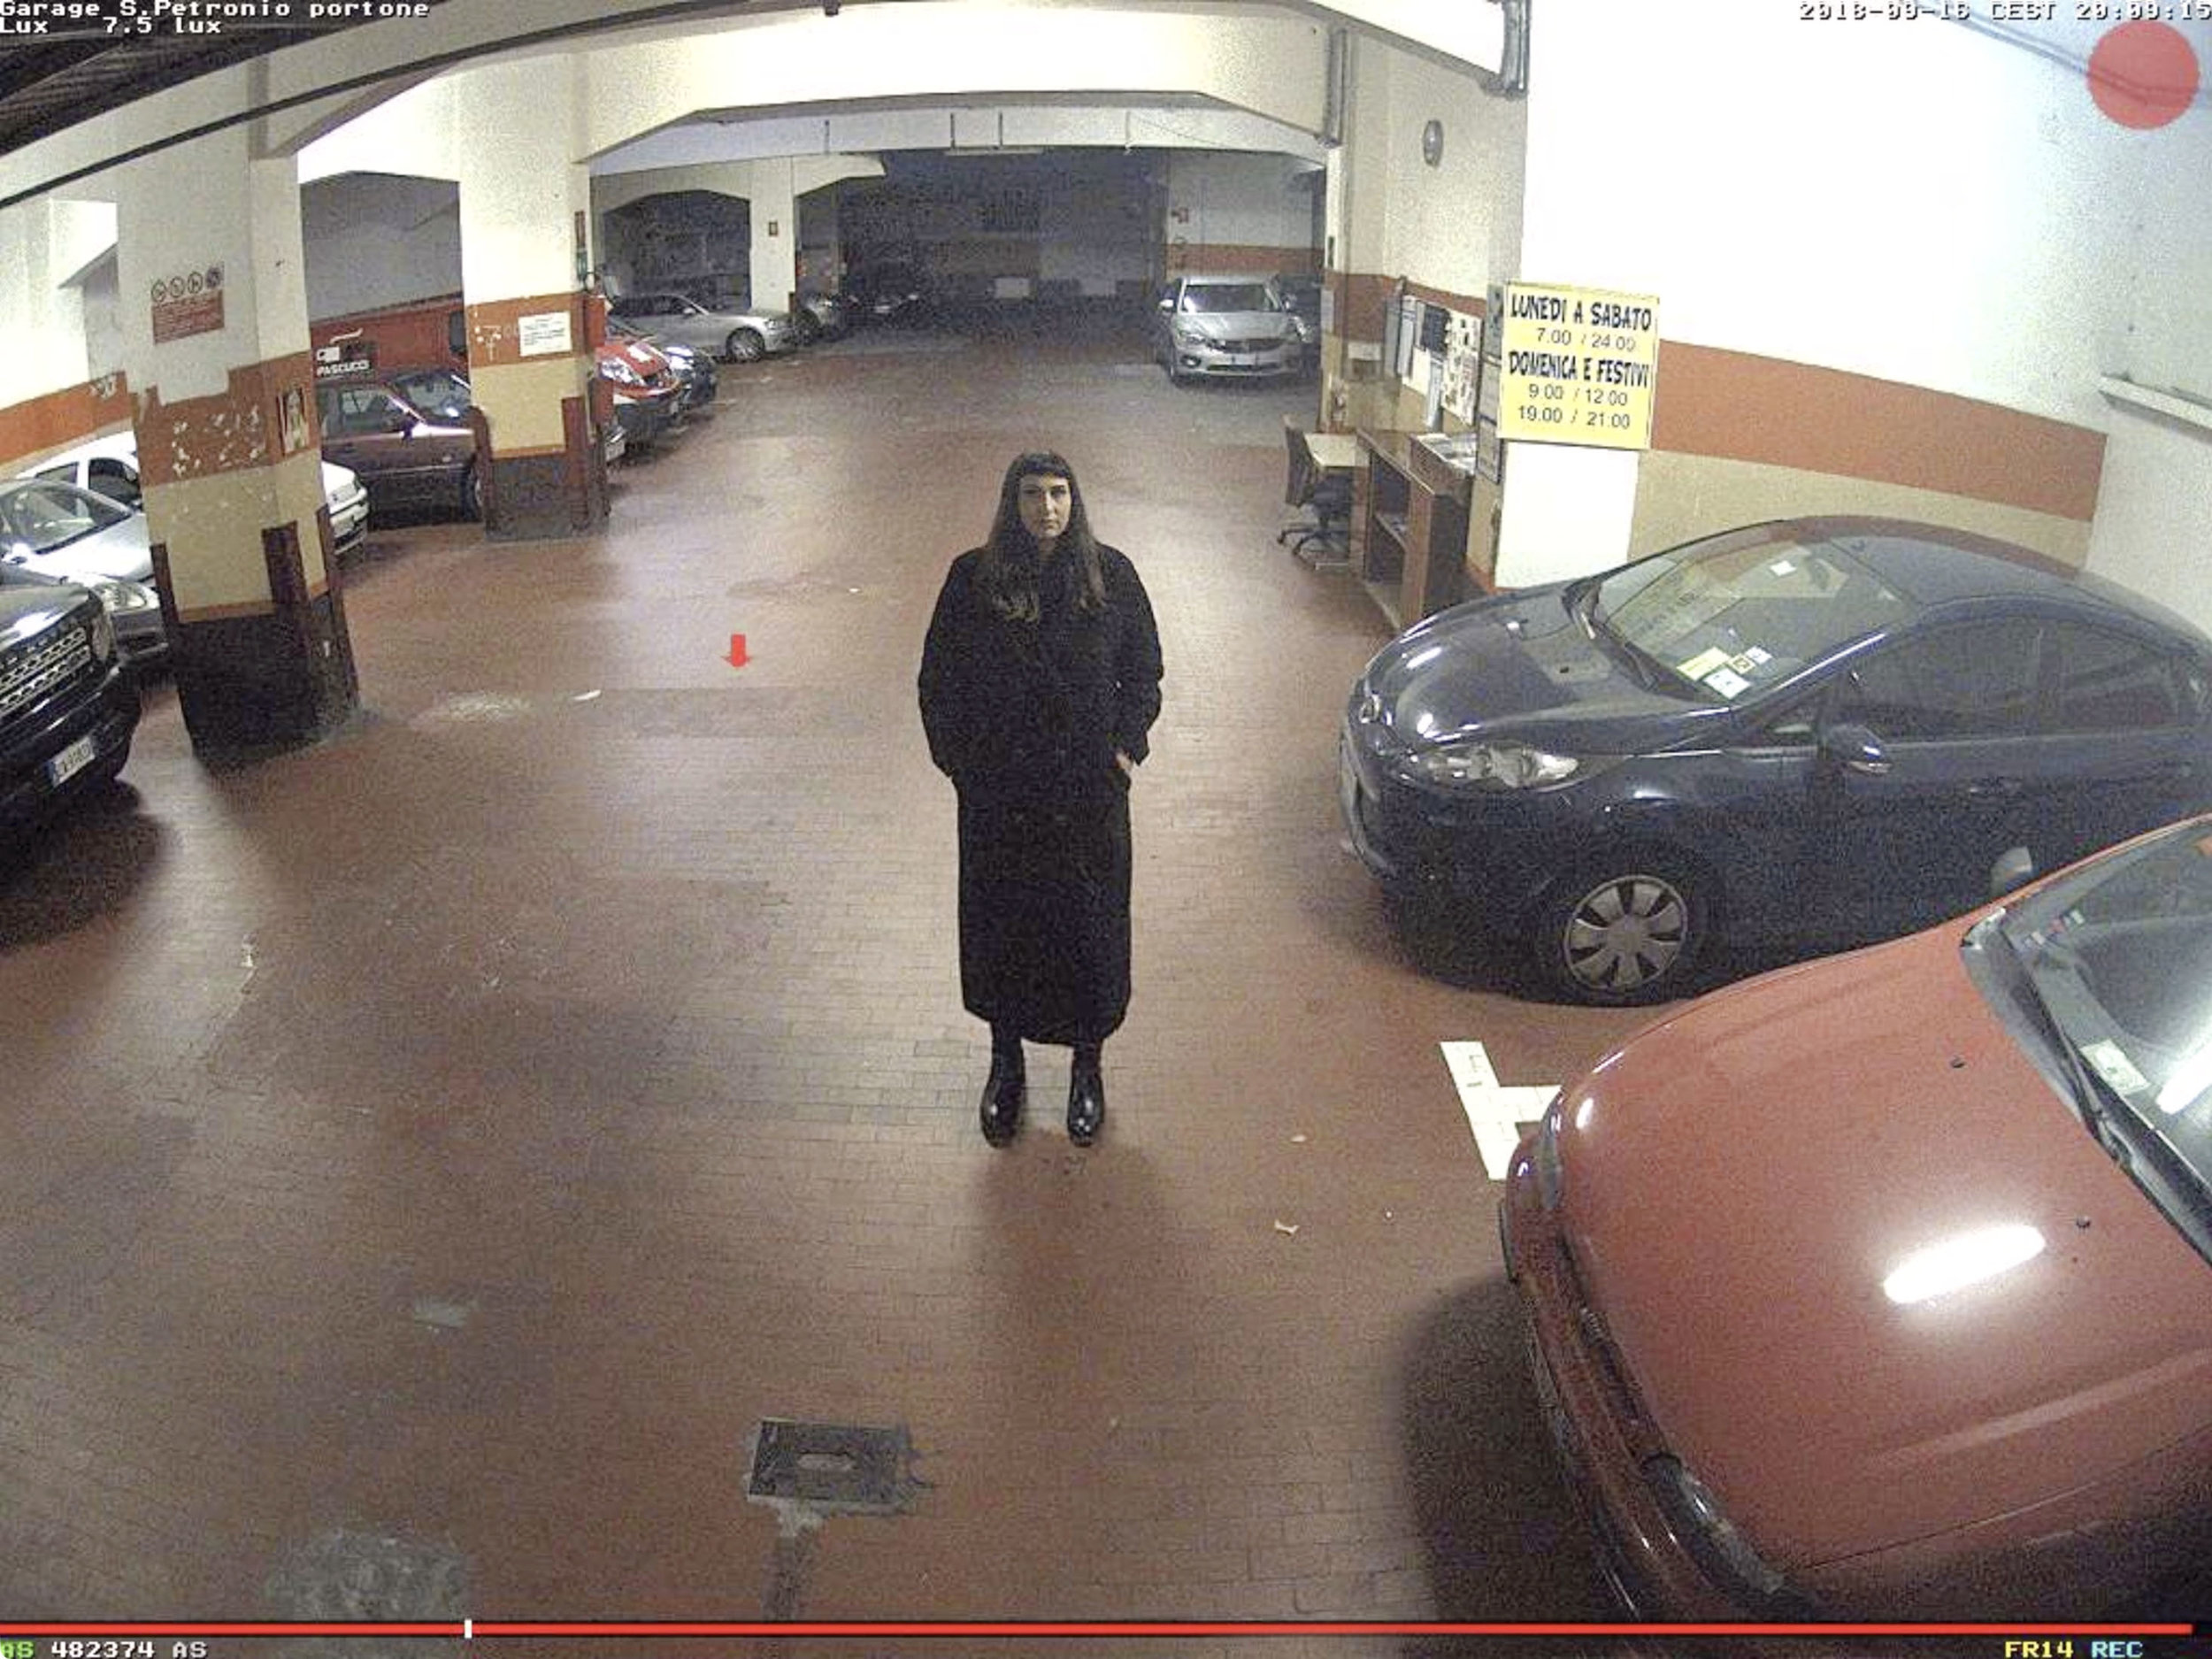 Irene Fenara _Self Portrait from Surveillance Camera_ 4.jpg